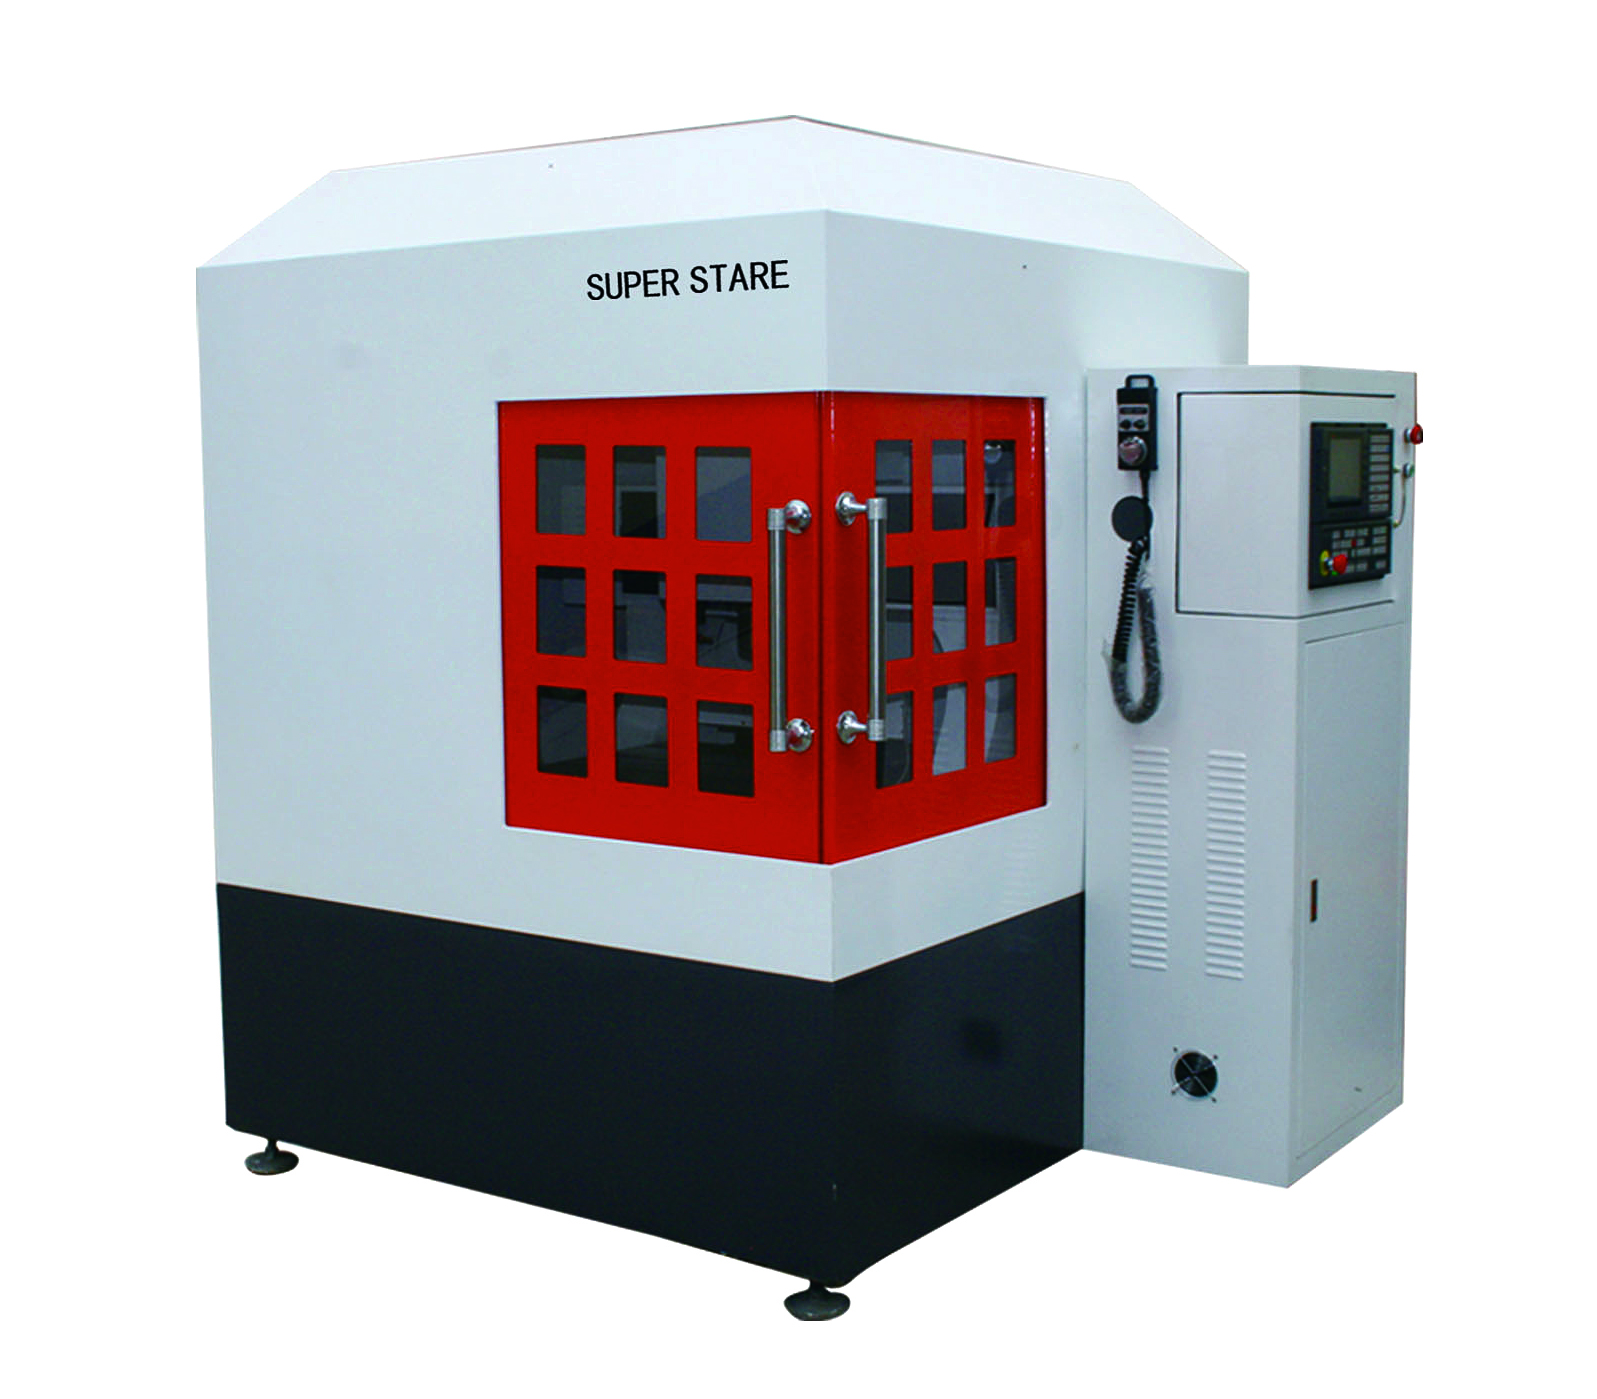 Superstar CNC CX-6060 Metal CNC Mold Machine